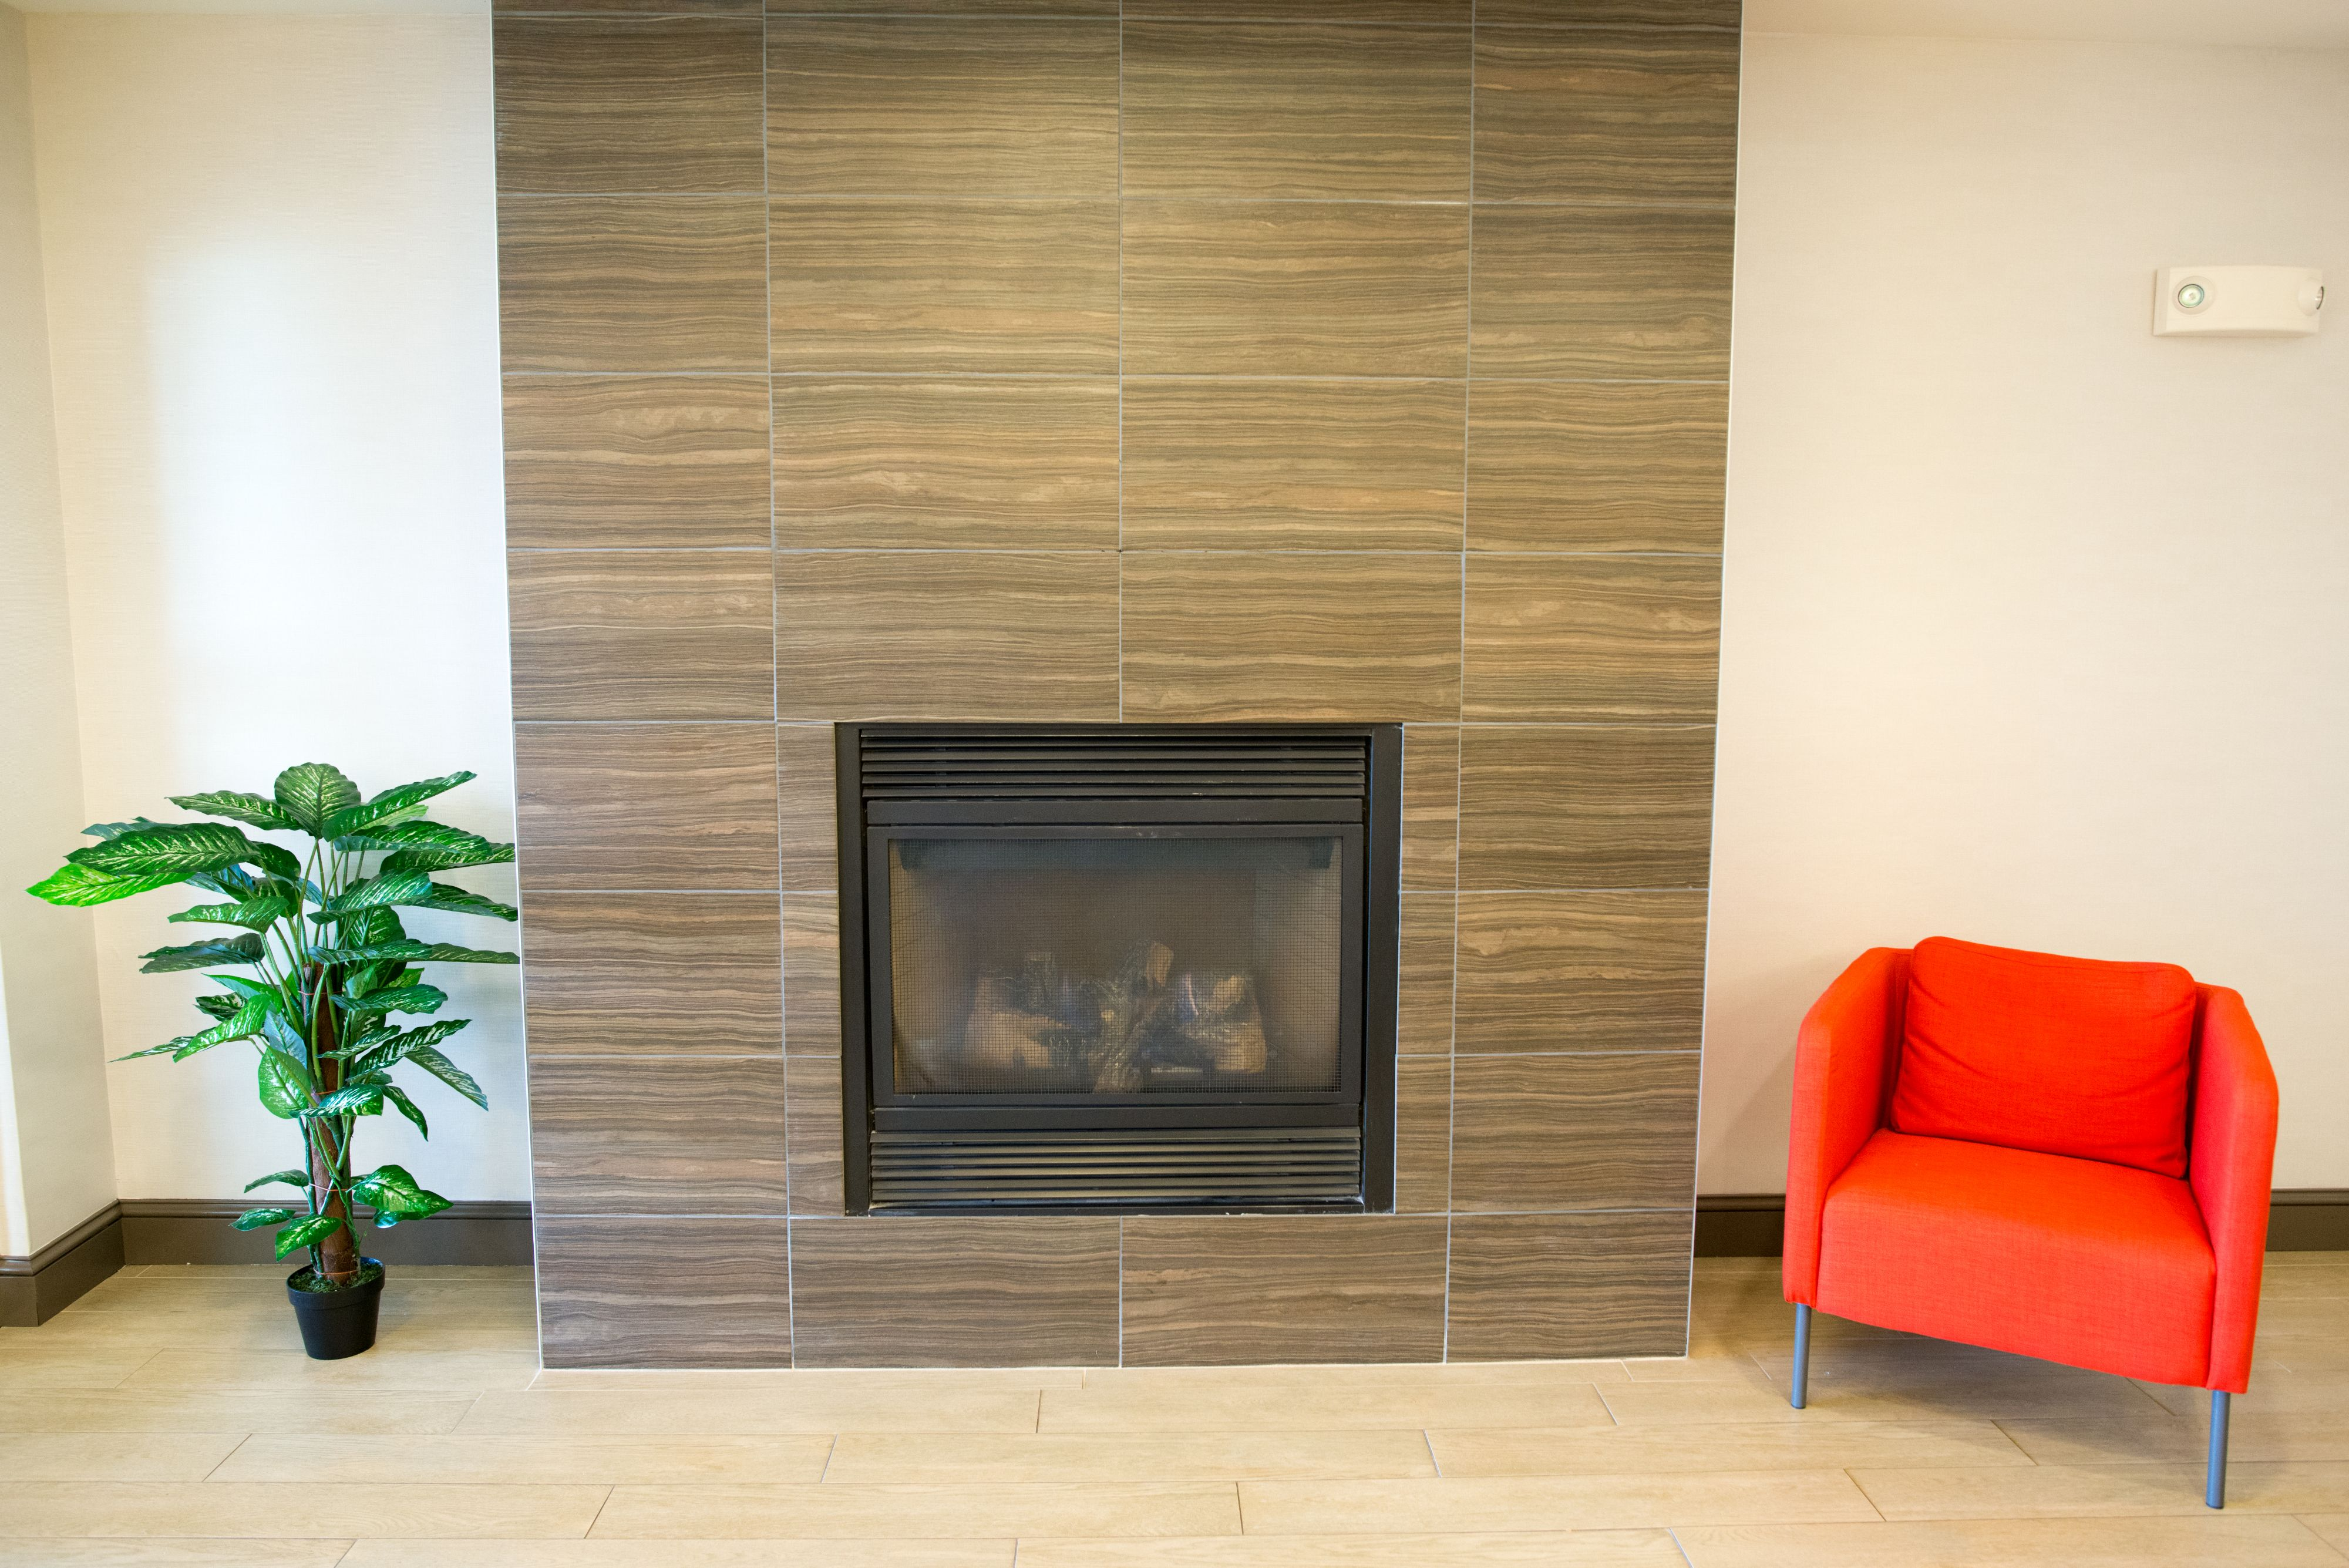 Holiday Inn Express & Suites Chanhassen image 4